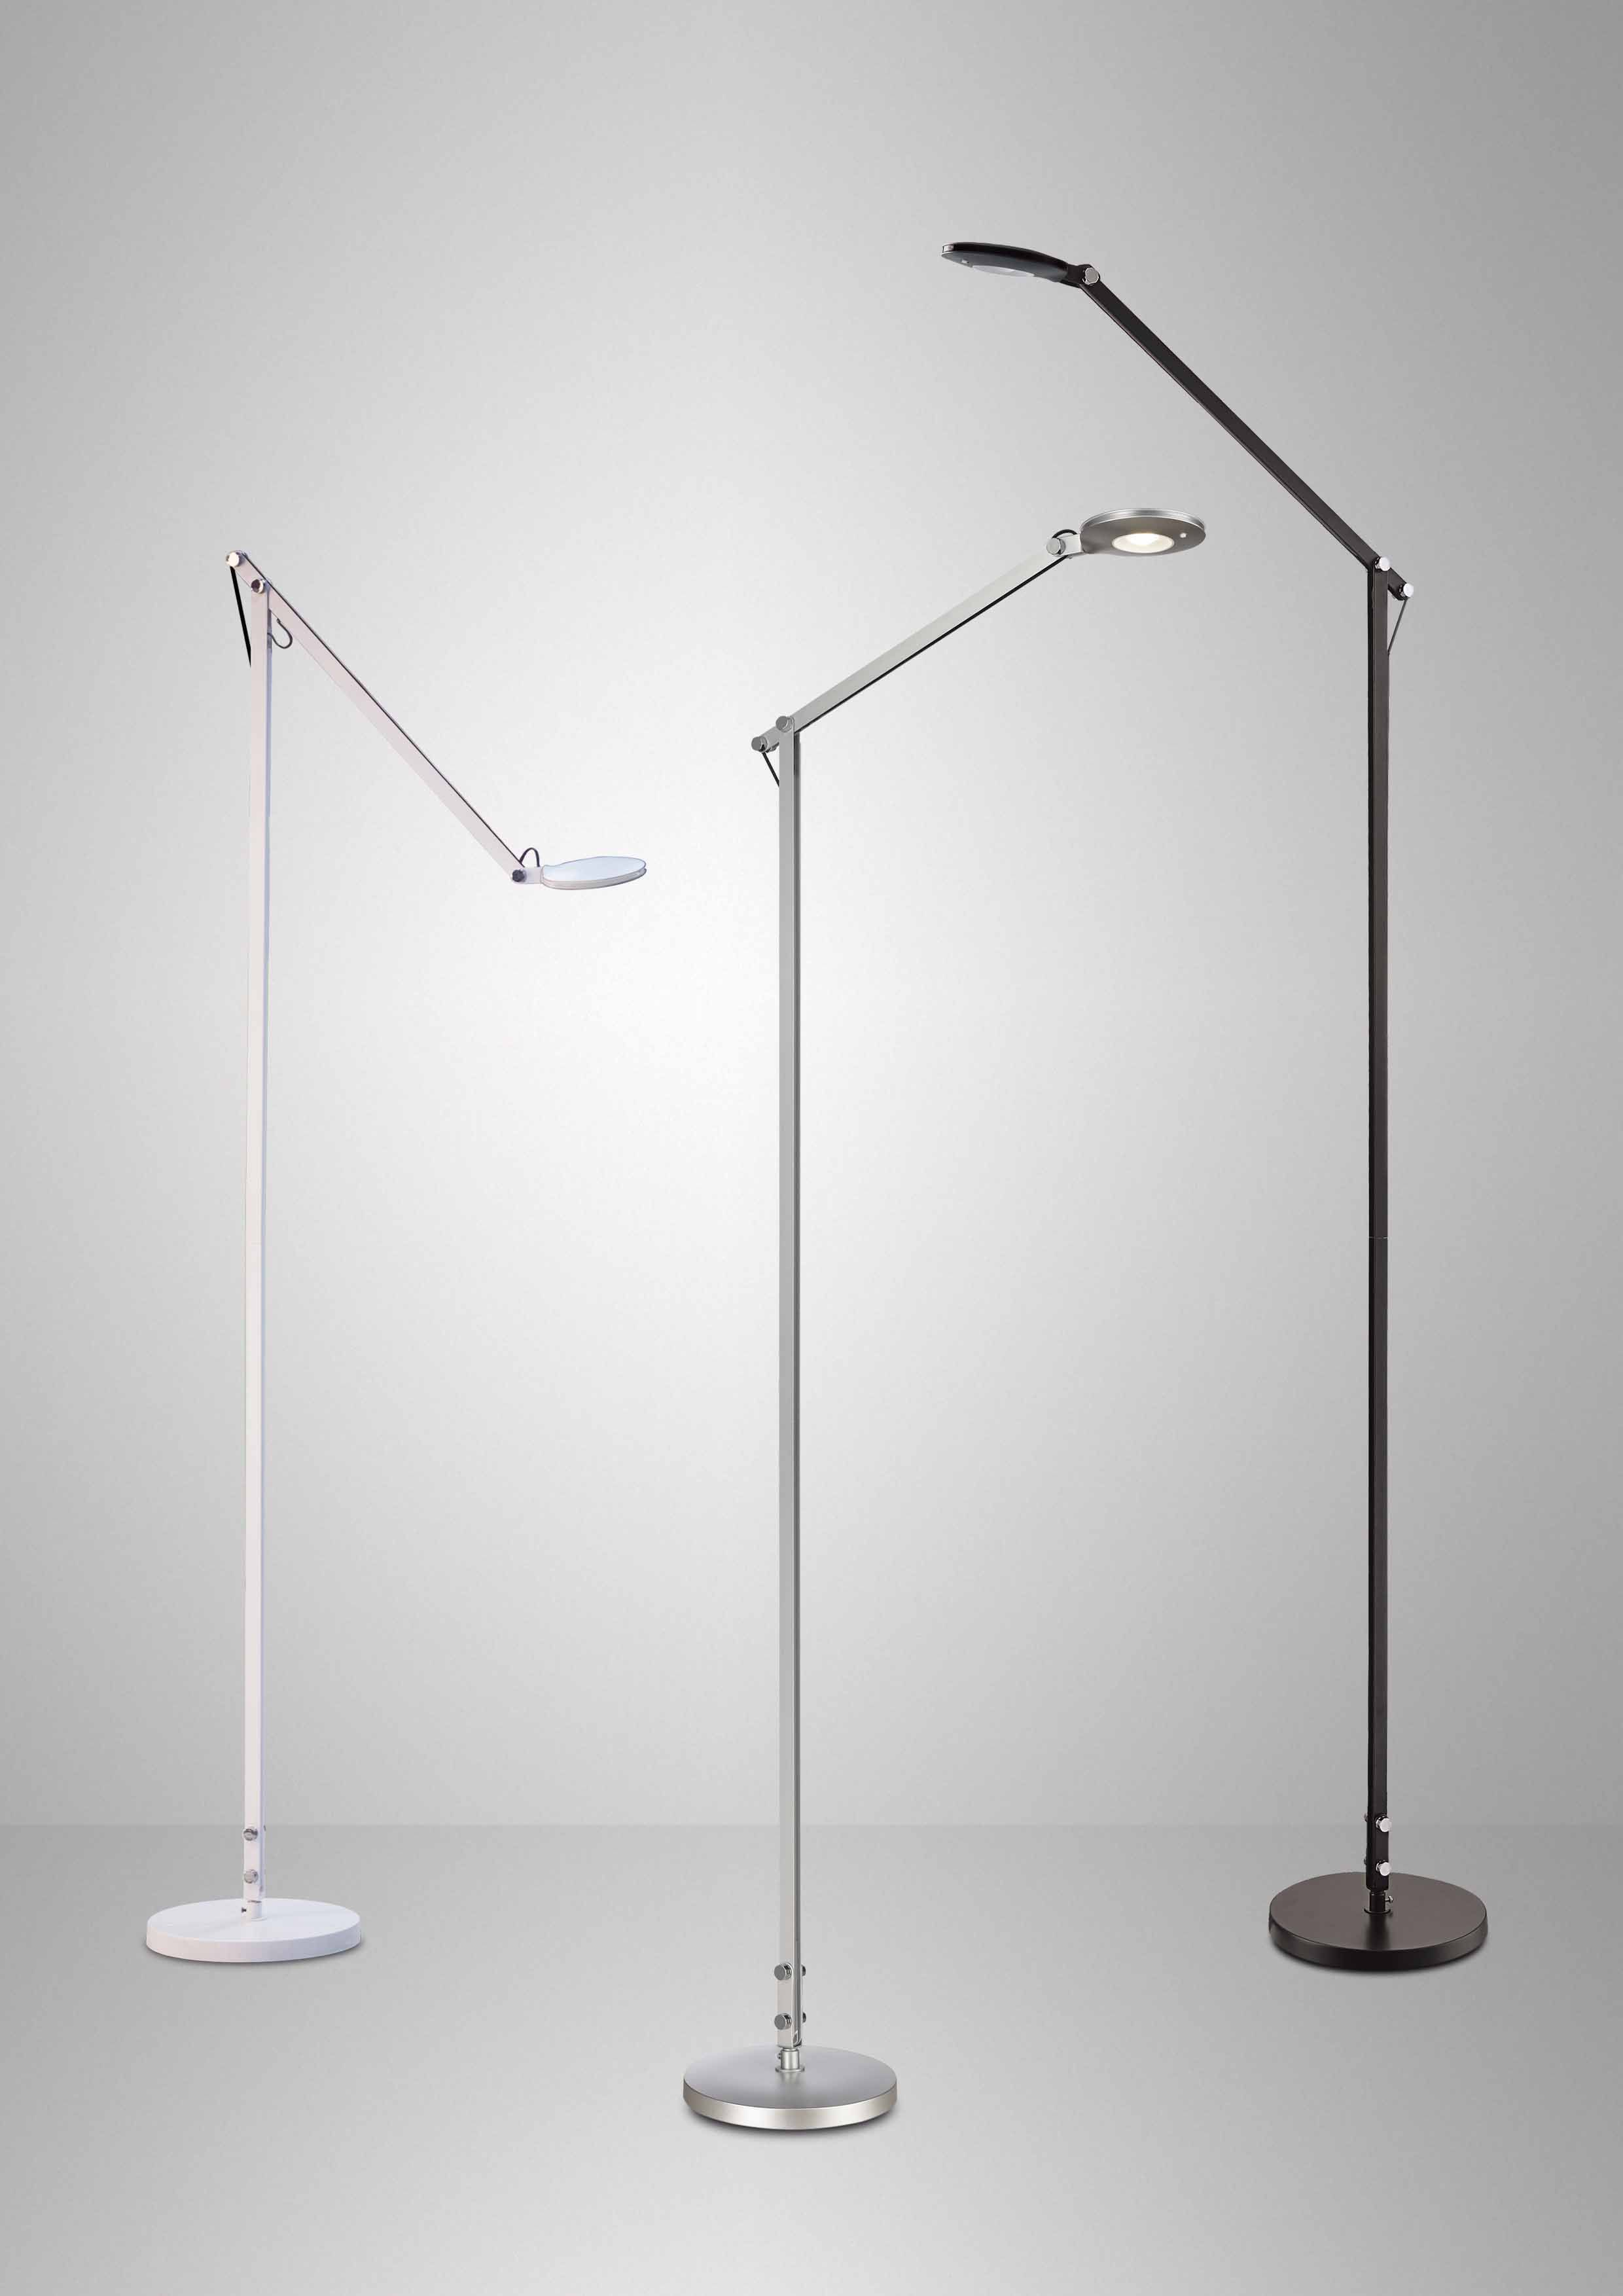 NATALIA New Collection Designed by Mantra Team lighting design